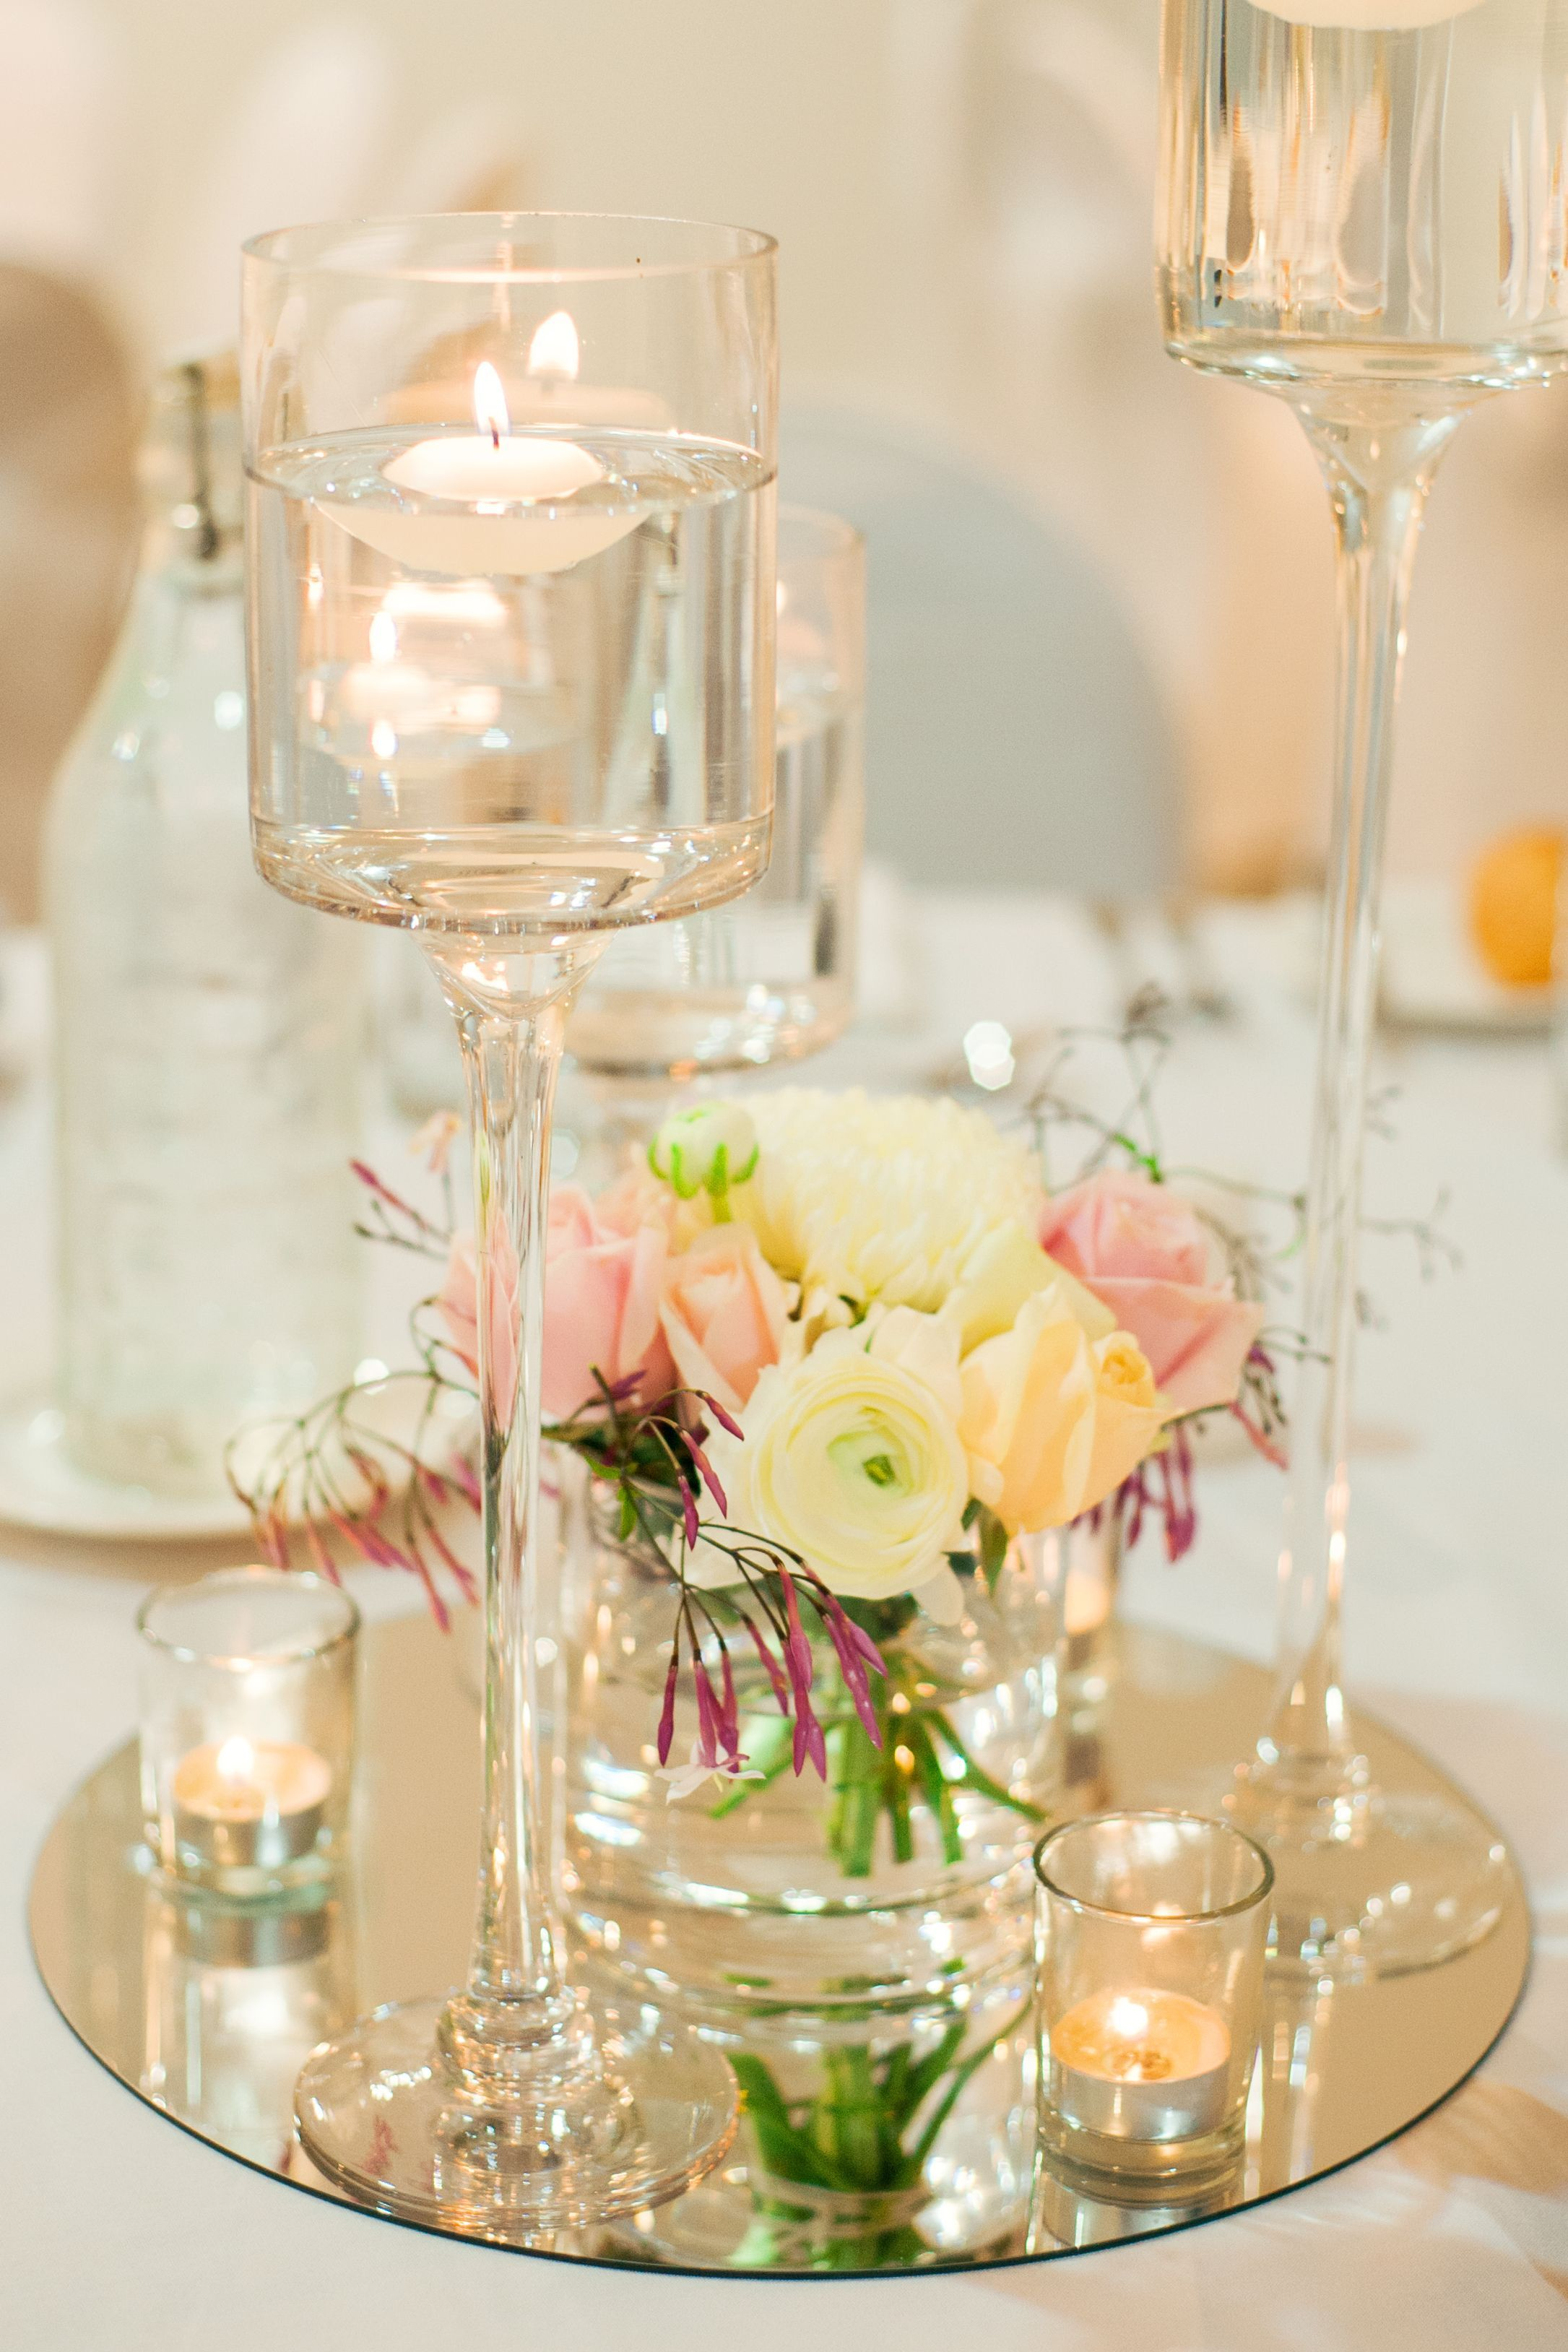 Floating candle centerpiece on a round mirror base with fresh